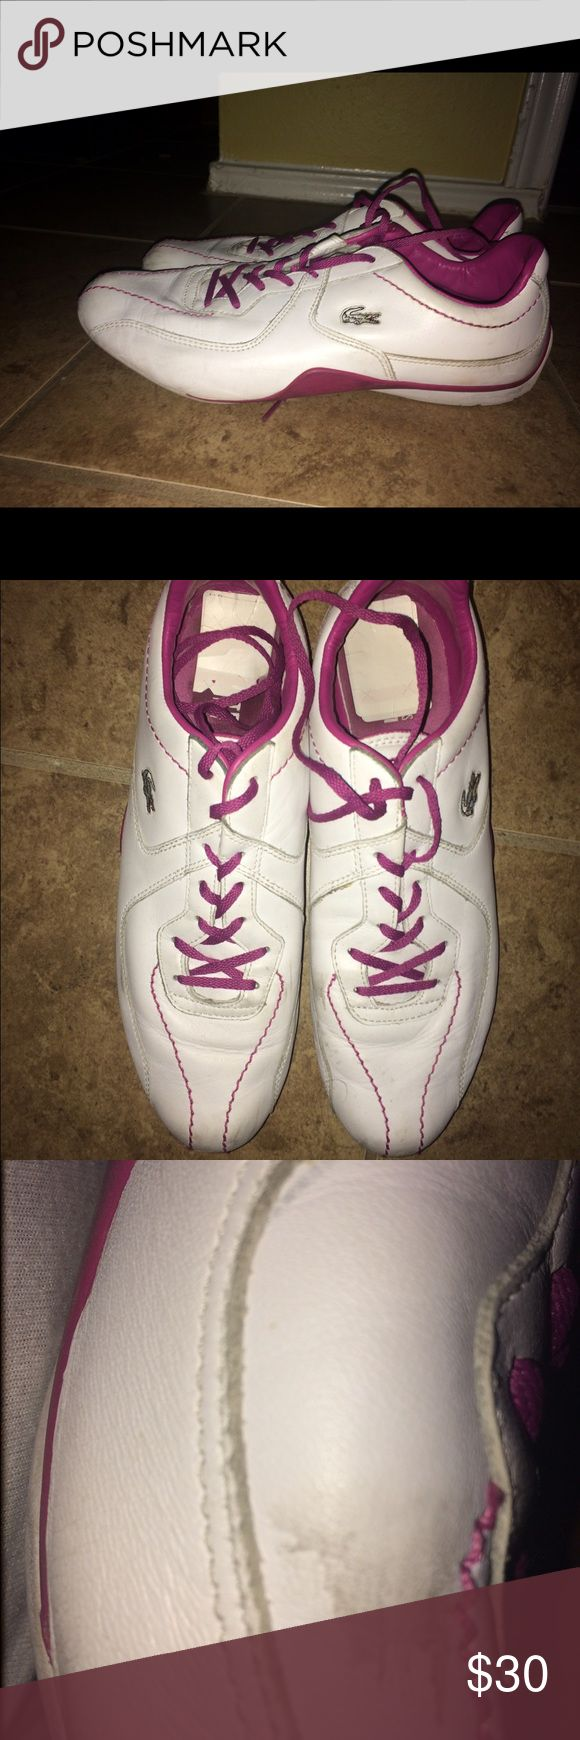 🎄Sale White Lacoste Sneakers Size: 11🎄 White Lacoste Sneakers Size: 11  Some Marks; Taking offers Lacoste Shoes Sneakers